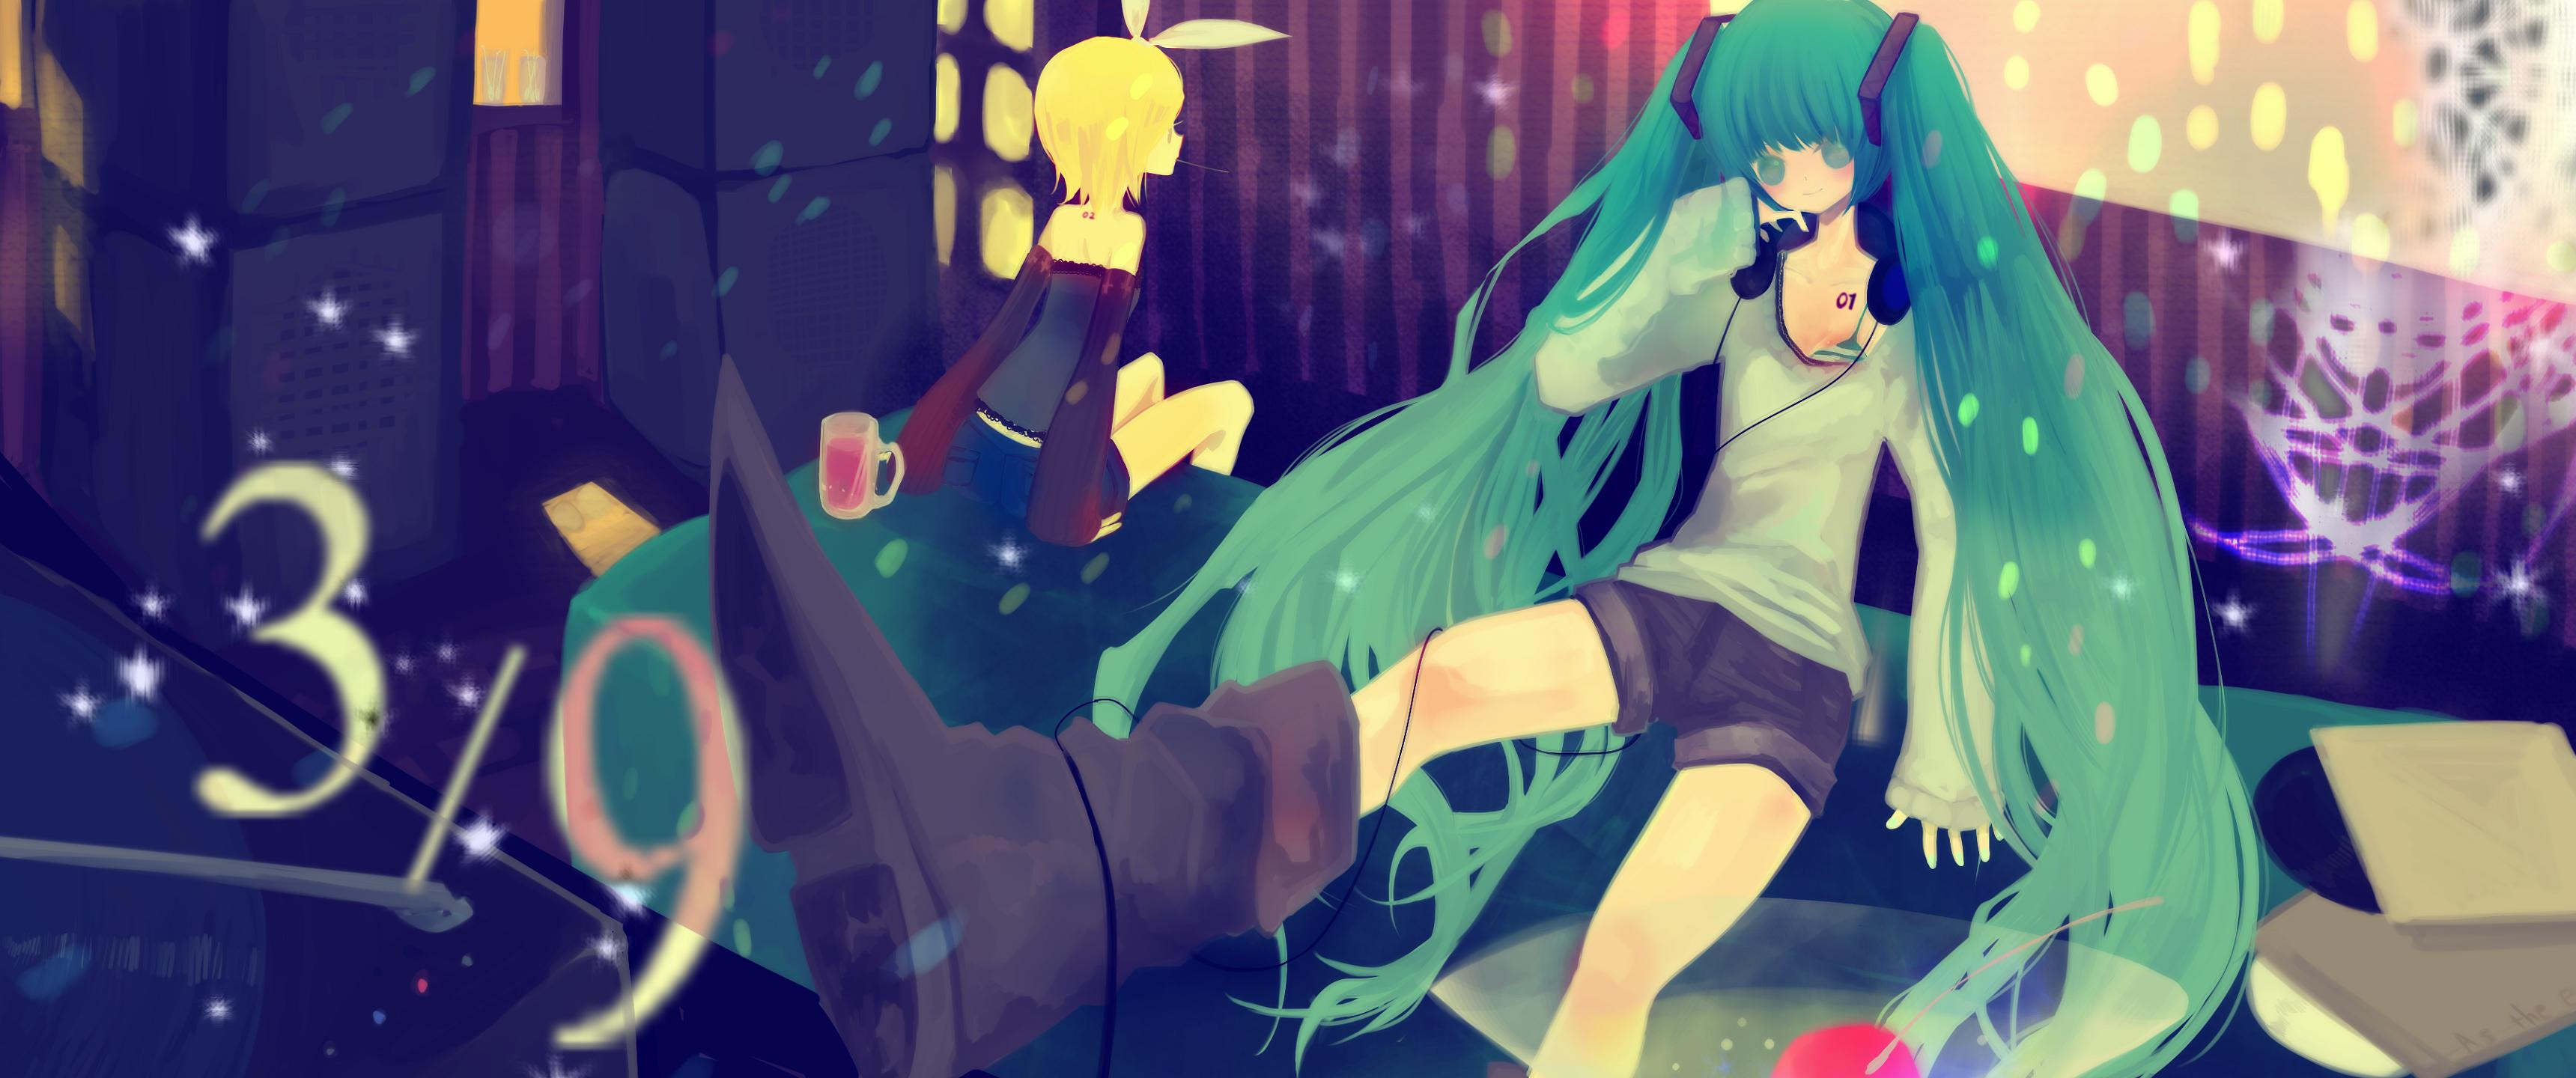 3440x1440 Anime Wallpapers Top Free 3440x1440 Anime Backgrounds Wallpaperaccess